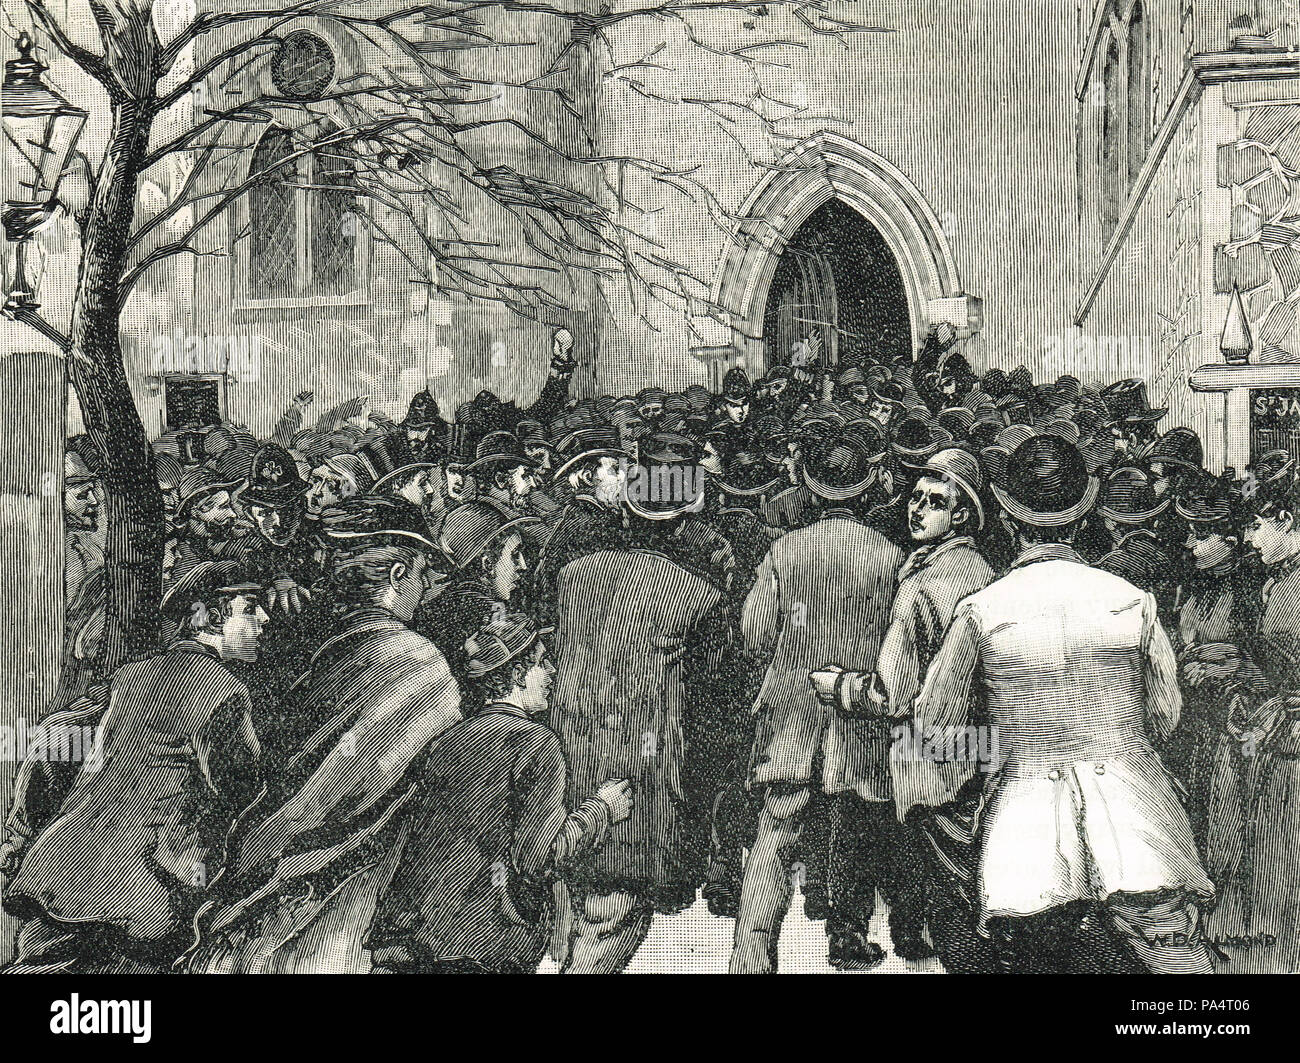 Riot at the church of St. James, Hatcham, 1877, protests at practises of Arthur Tooth, ritualist priest in the Church of England - Stock Image